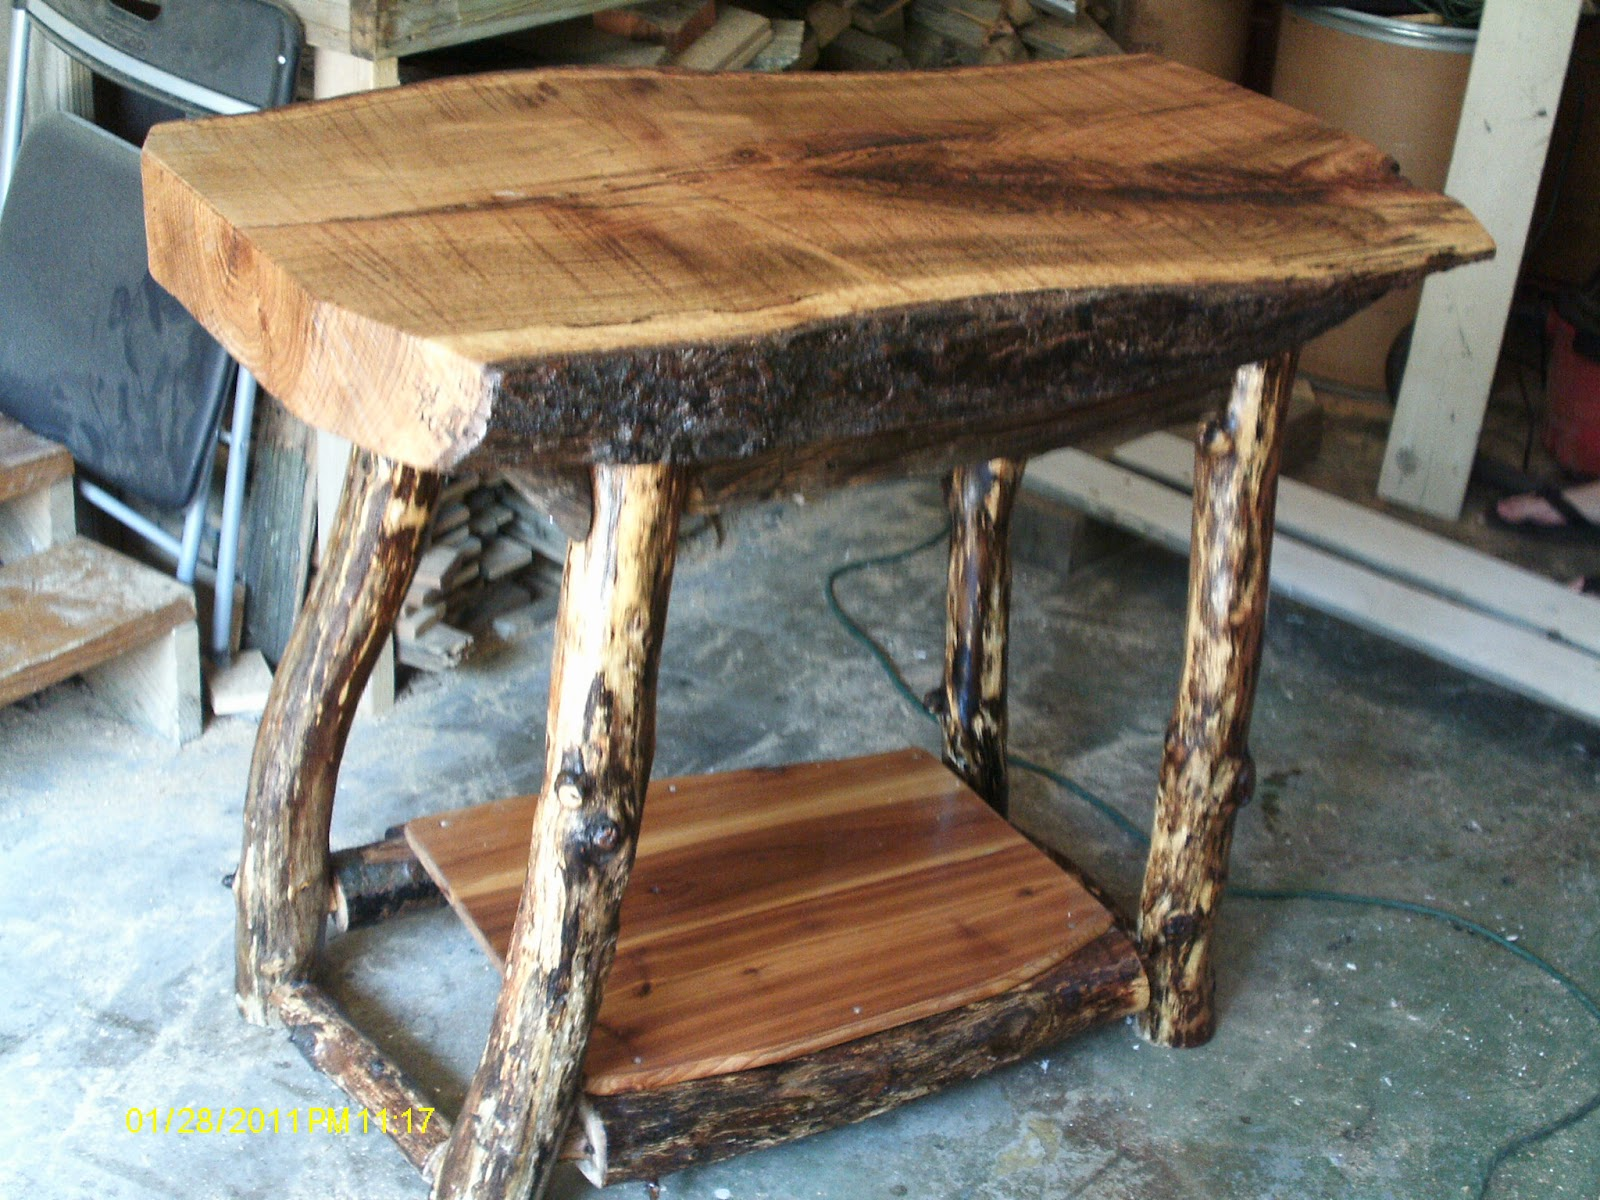 Handmade rustic log furniture june 2012 Homemade wooden furniture